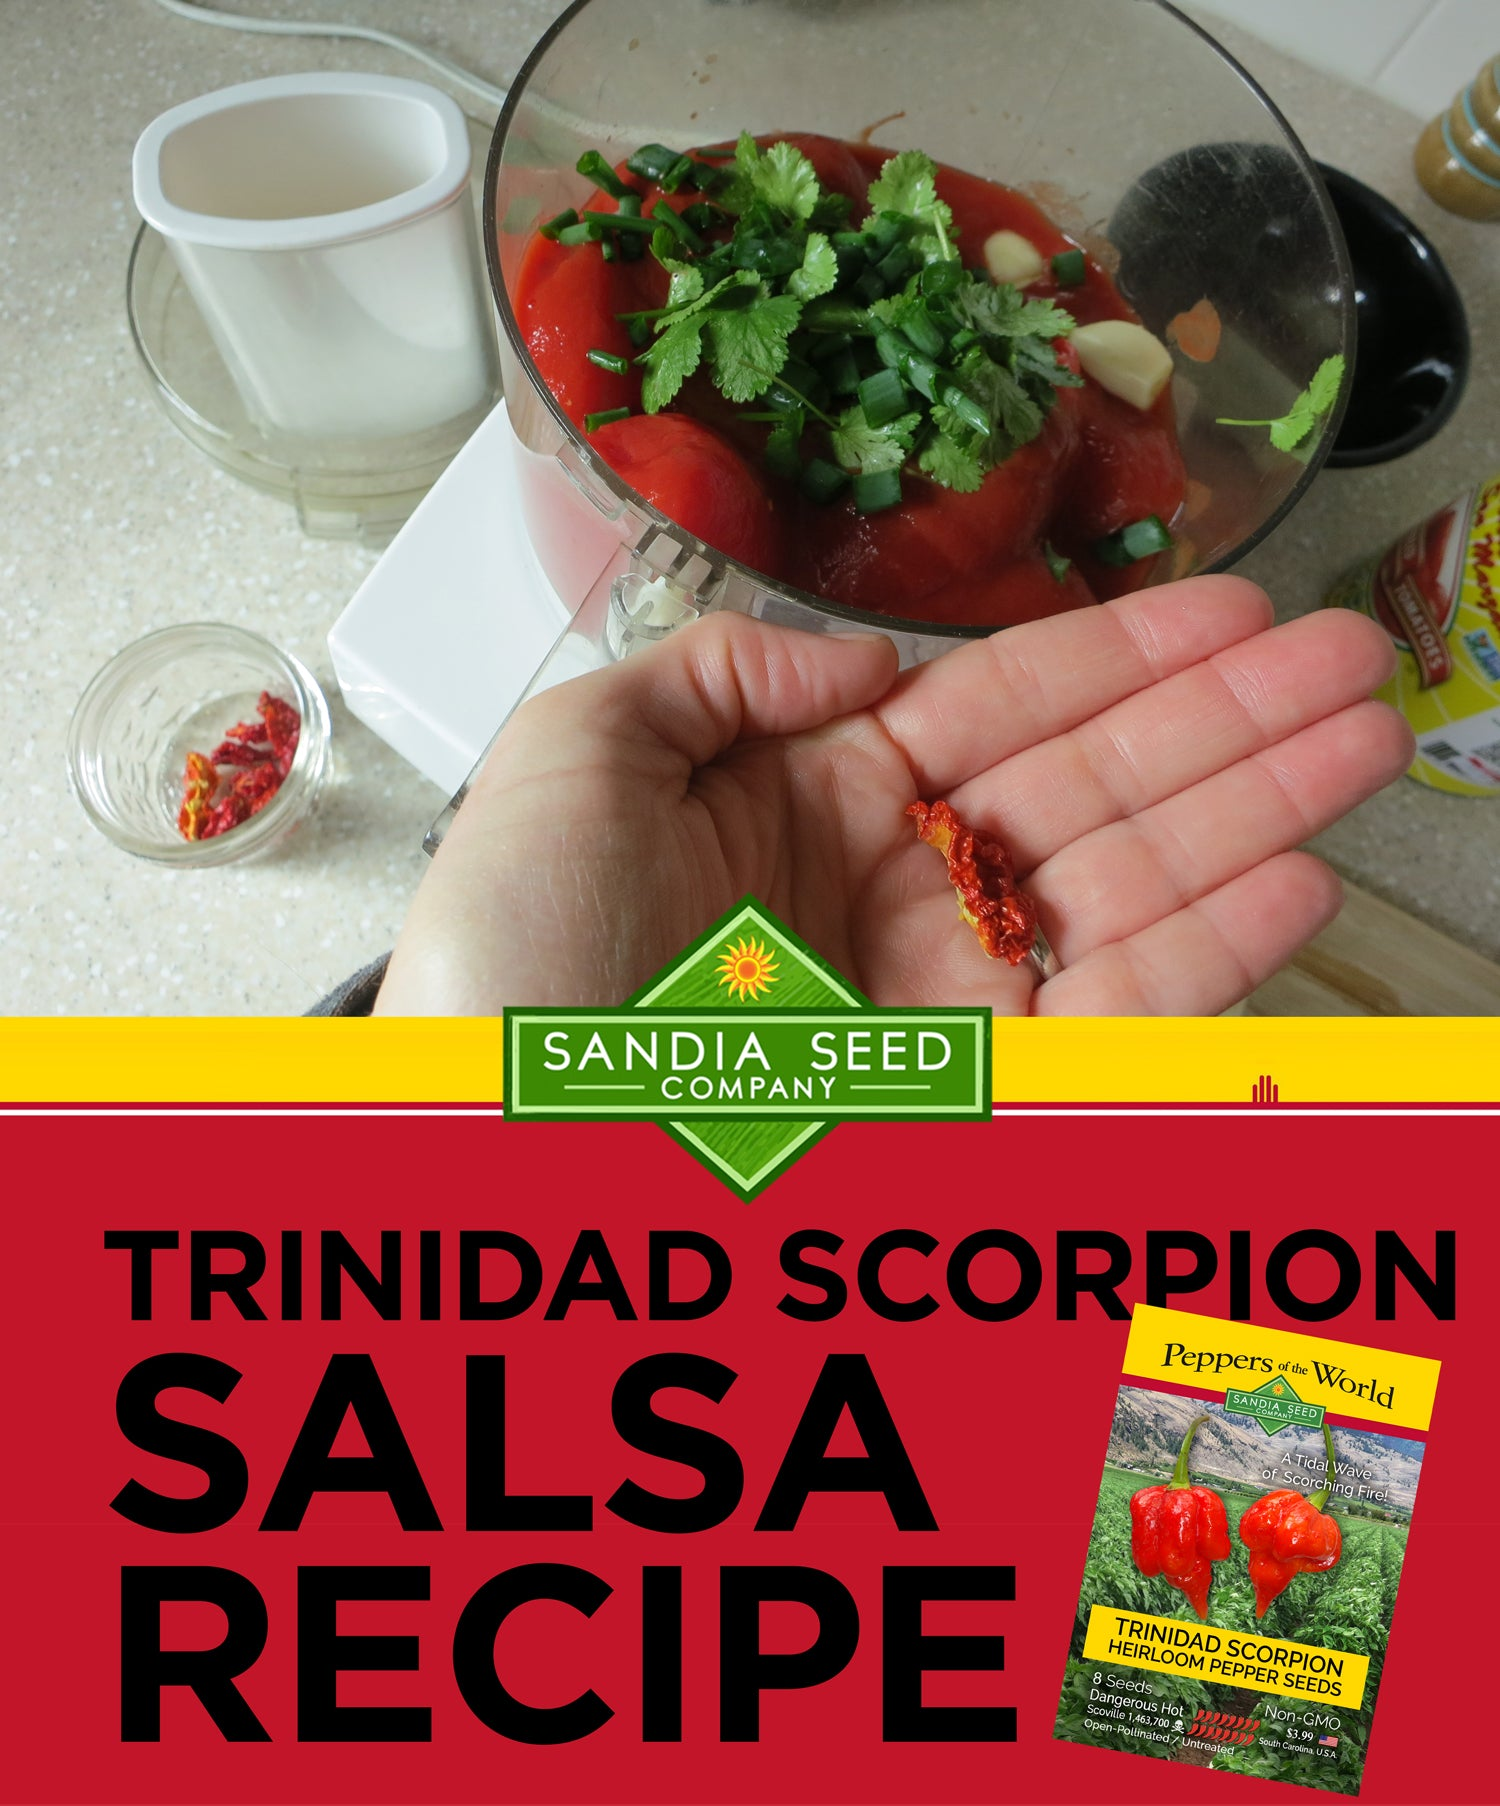 Trinidad Scorpion Salsa Recipe